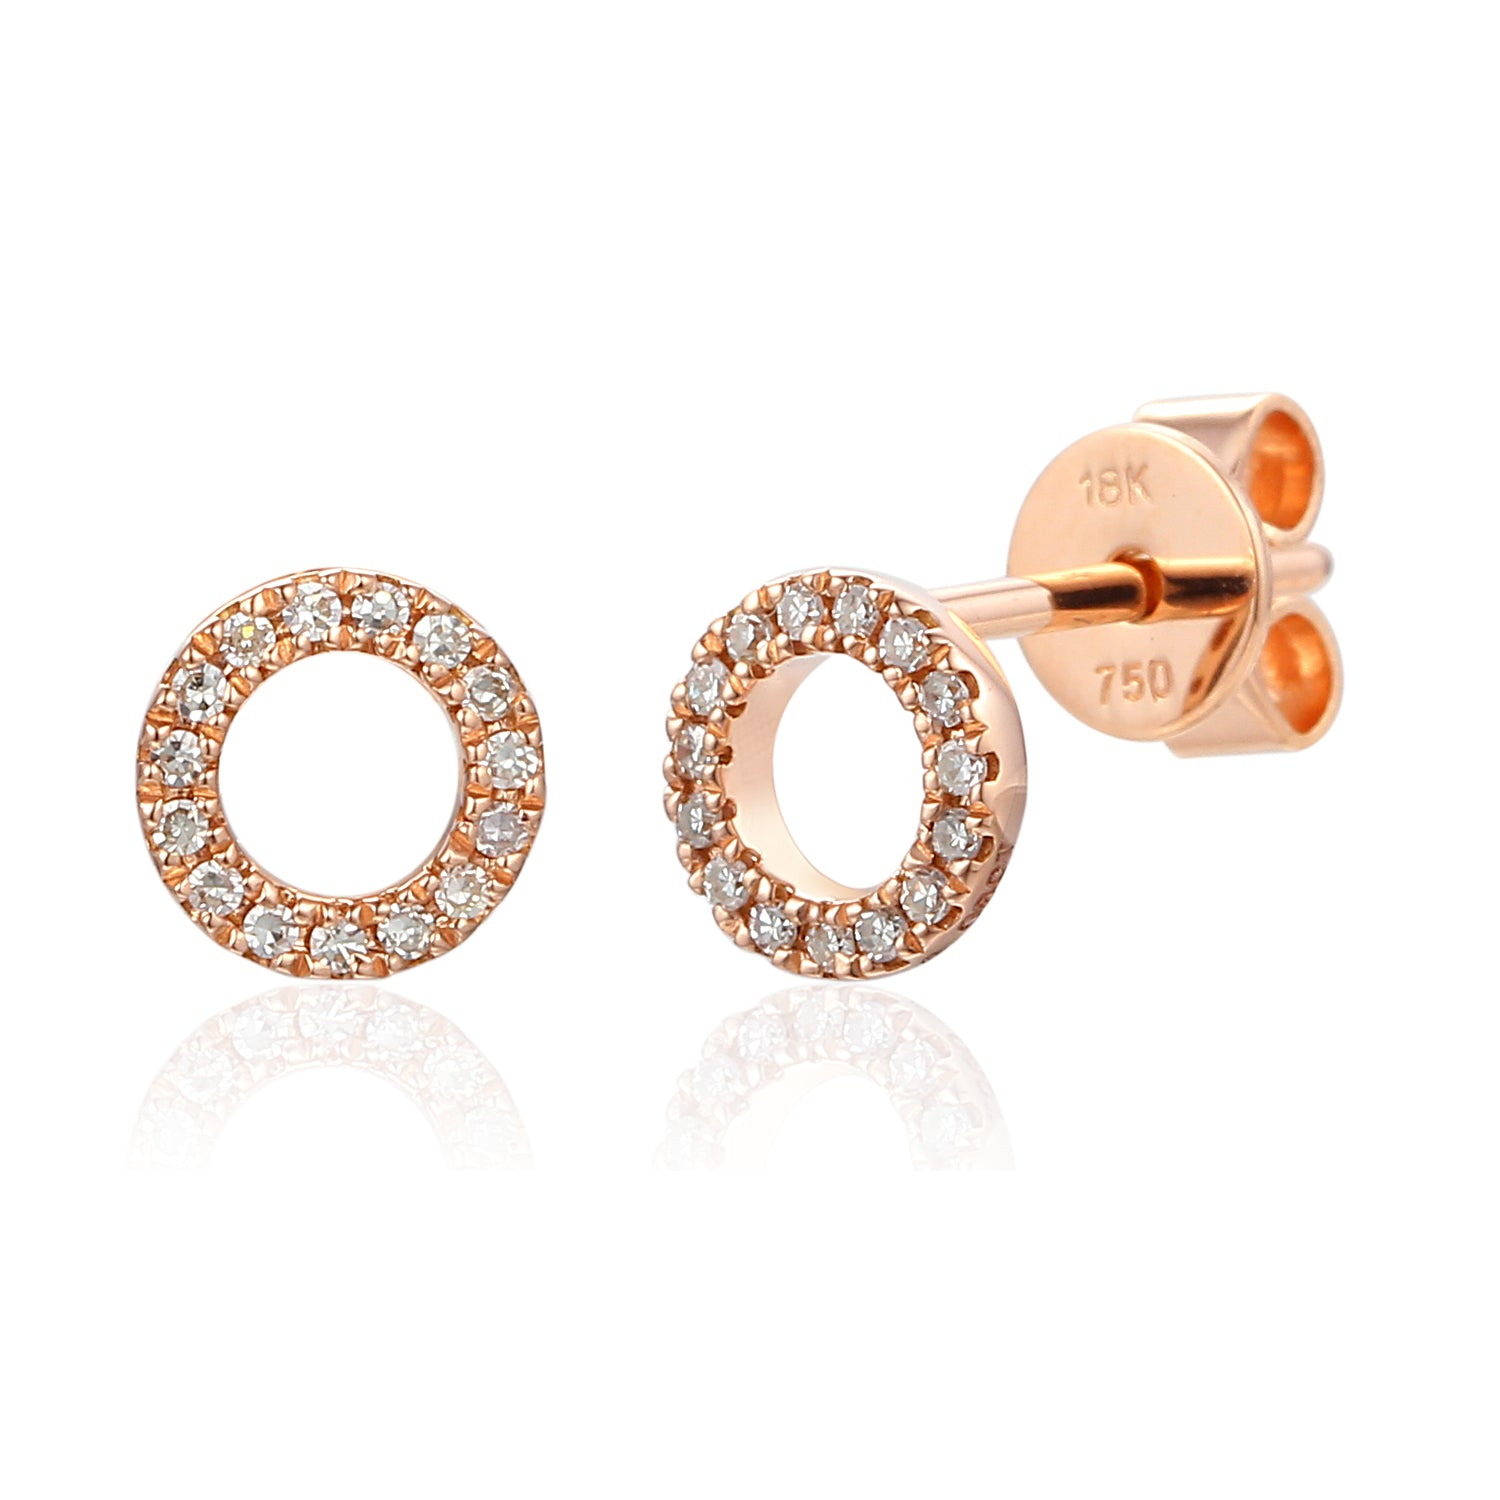 accessories item rhinestone platinum round double paved woman earrings rose color fashion jewelry viennois gold plated silver circle from newest in for on stud